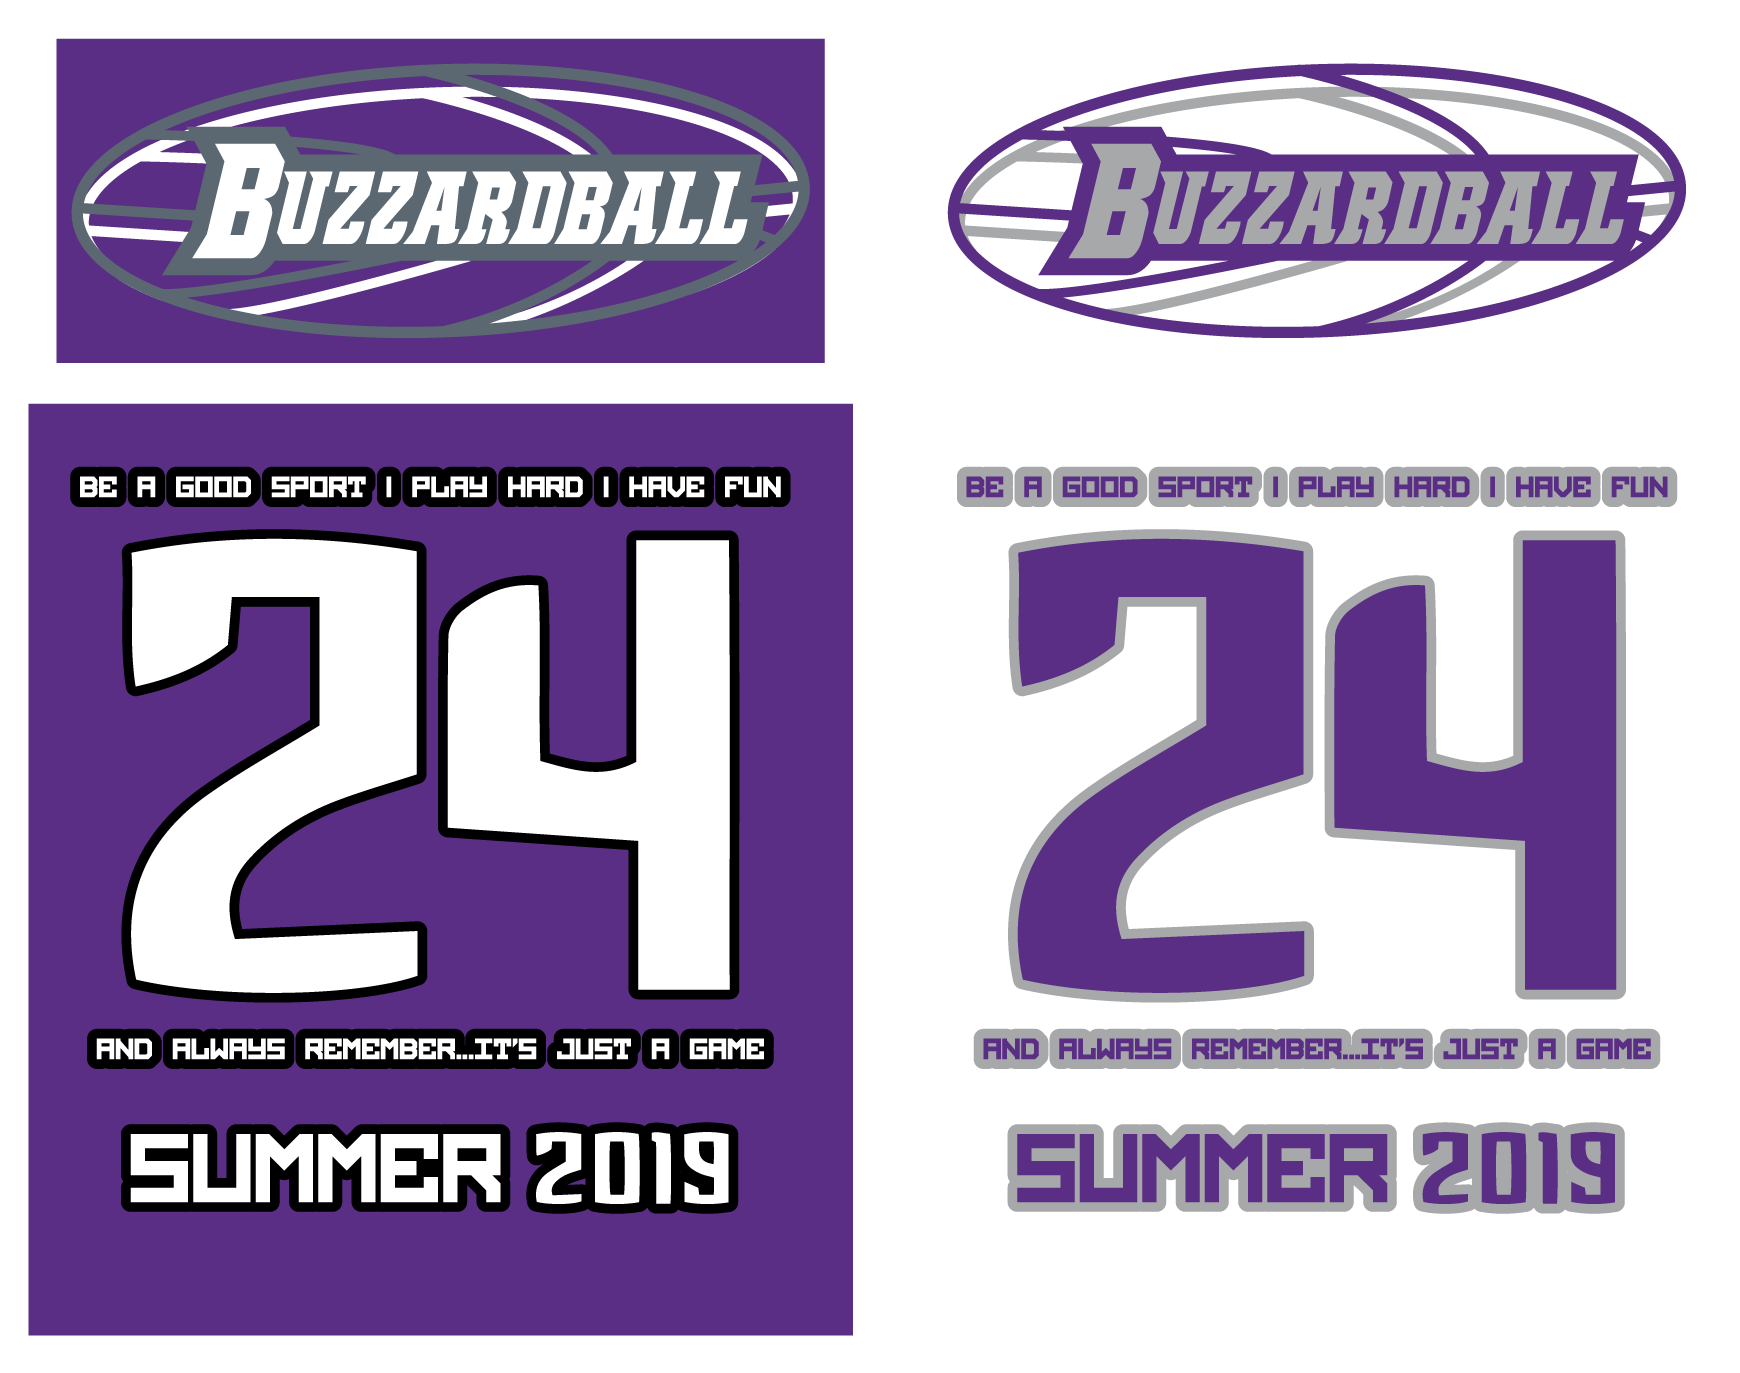 In Year No. 24, BUZZARDBALL will honor our NORTHERN CALIFORNIA teams … the SACRAMENTO KINGS and GOLDEN STATE WARRIORS